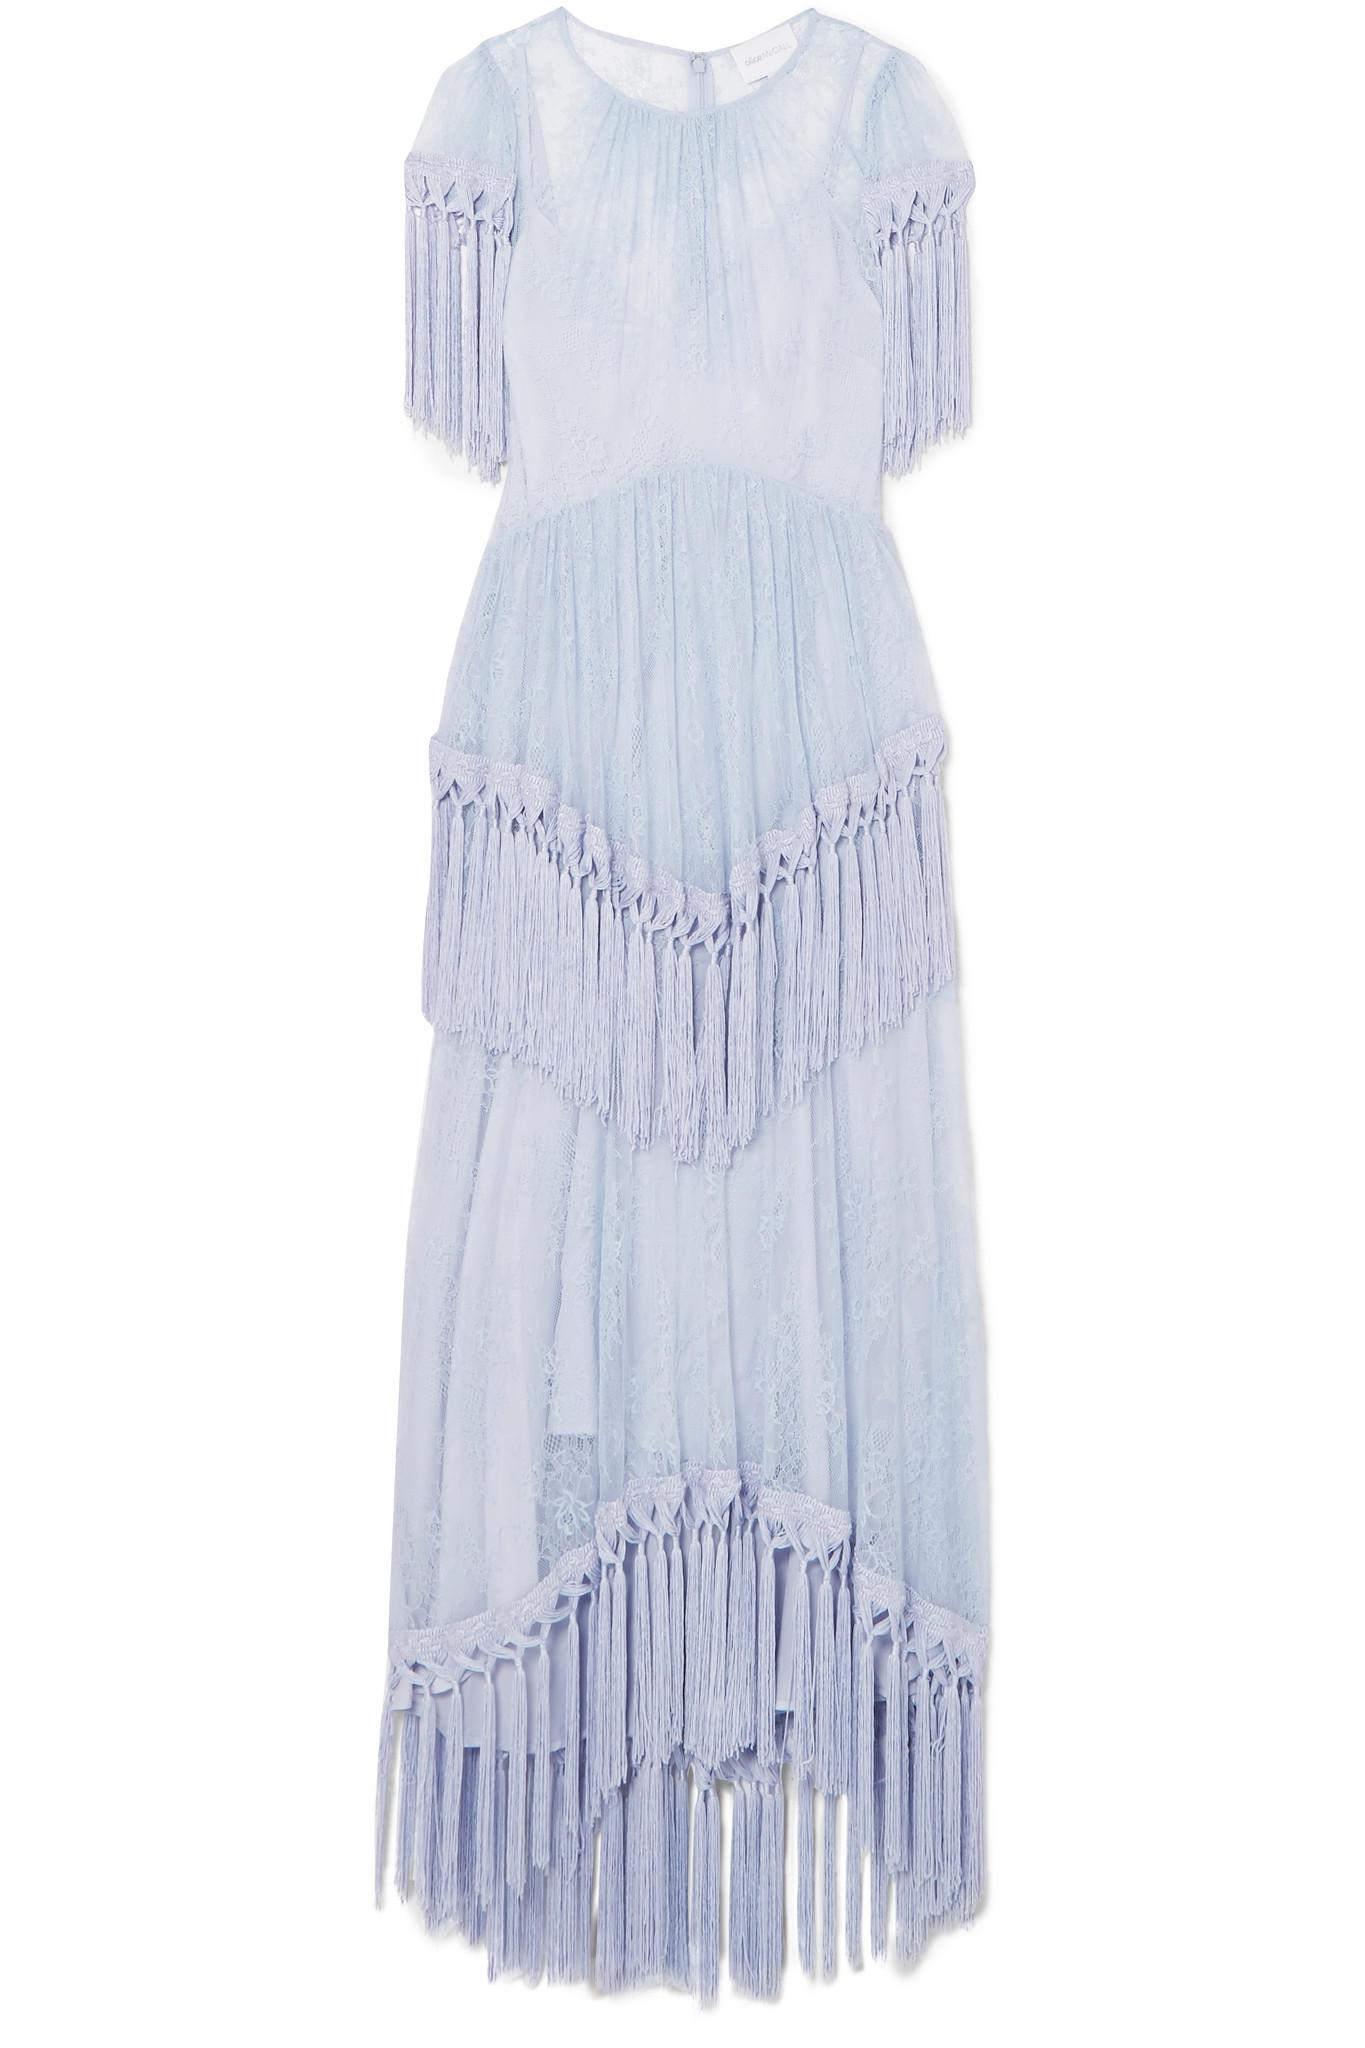 More Than A Woman Fringed Chantilly Lace Dress - Blue Alice McCall XfAJYBej